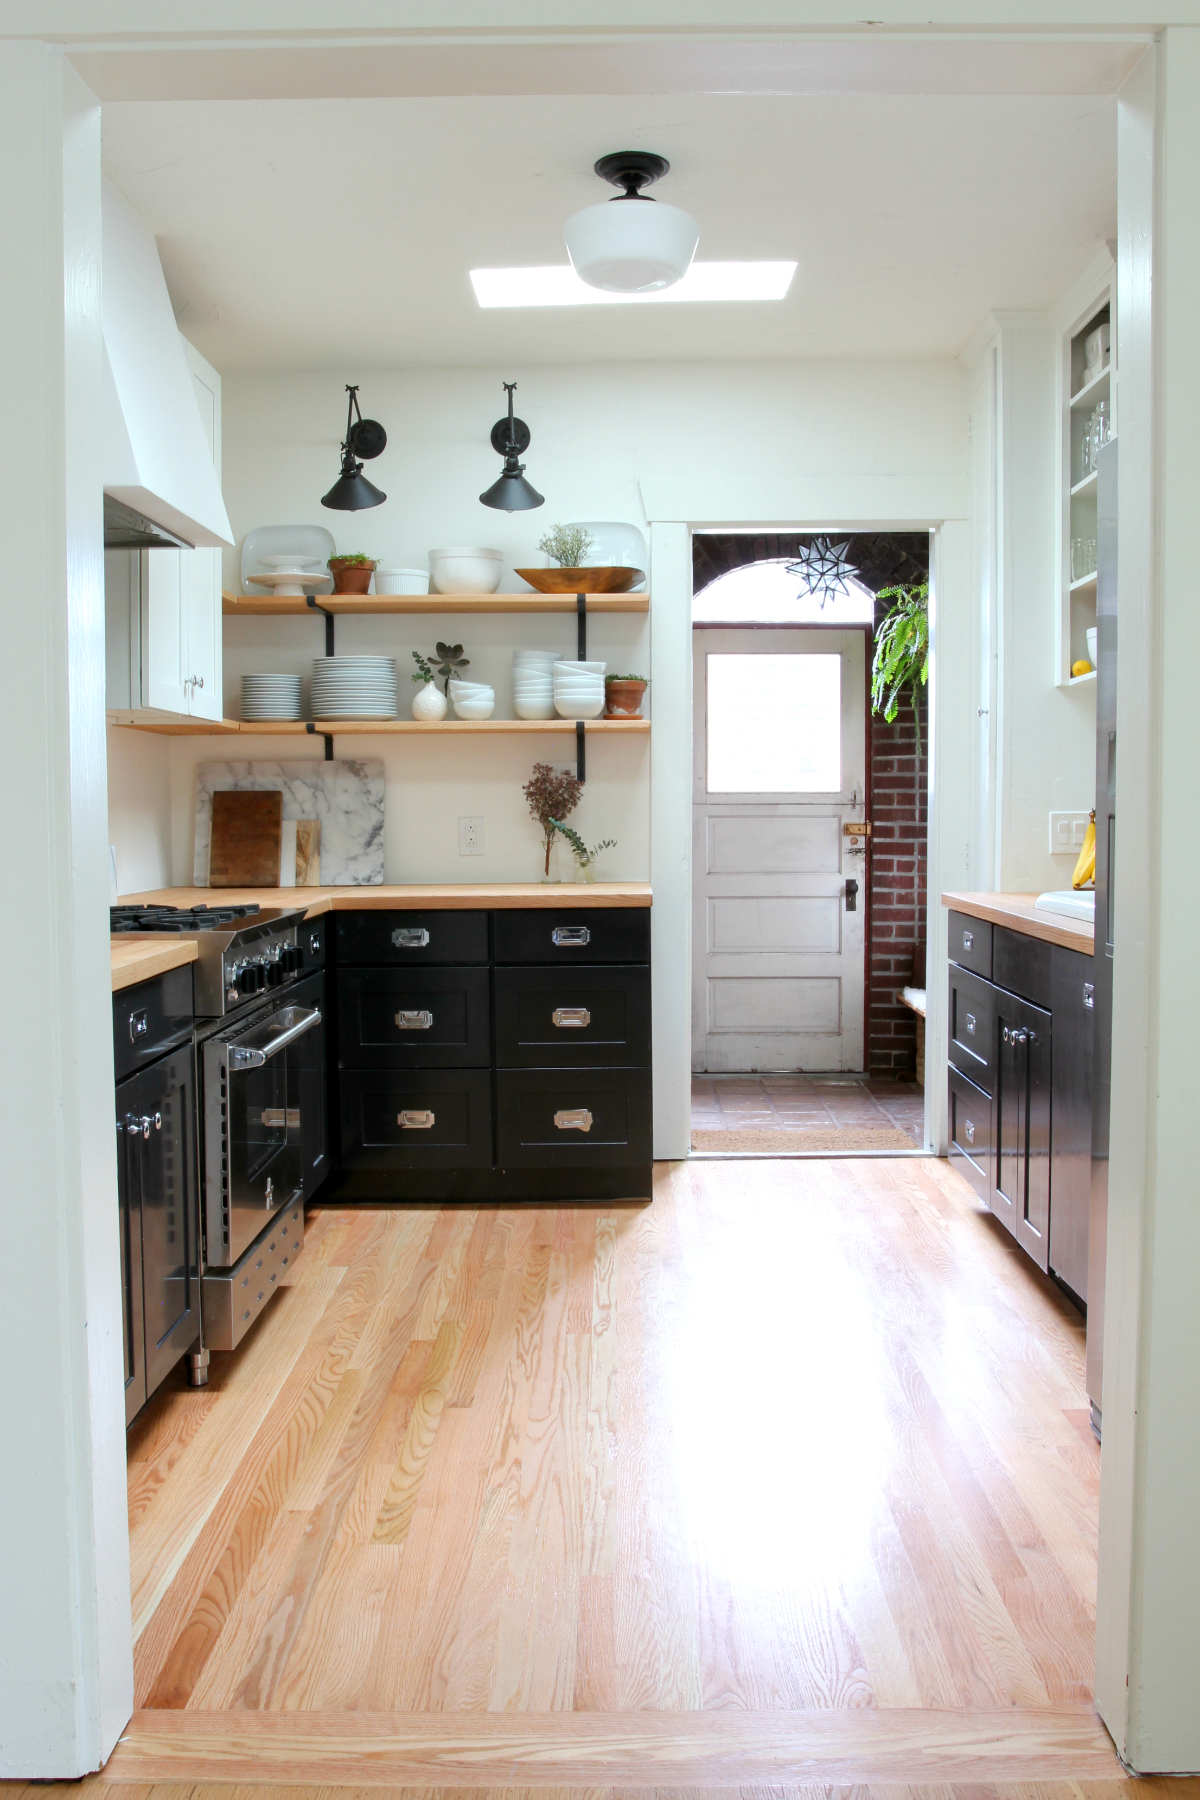 The Grit and Polish - Dexter Kitchen Remodel All